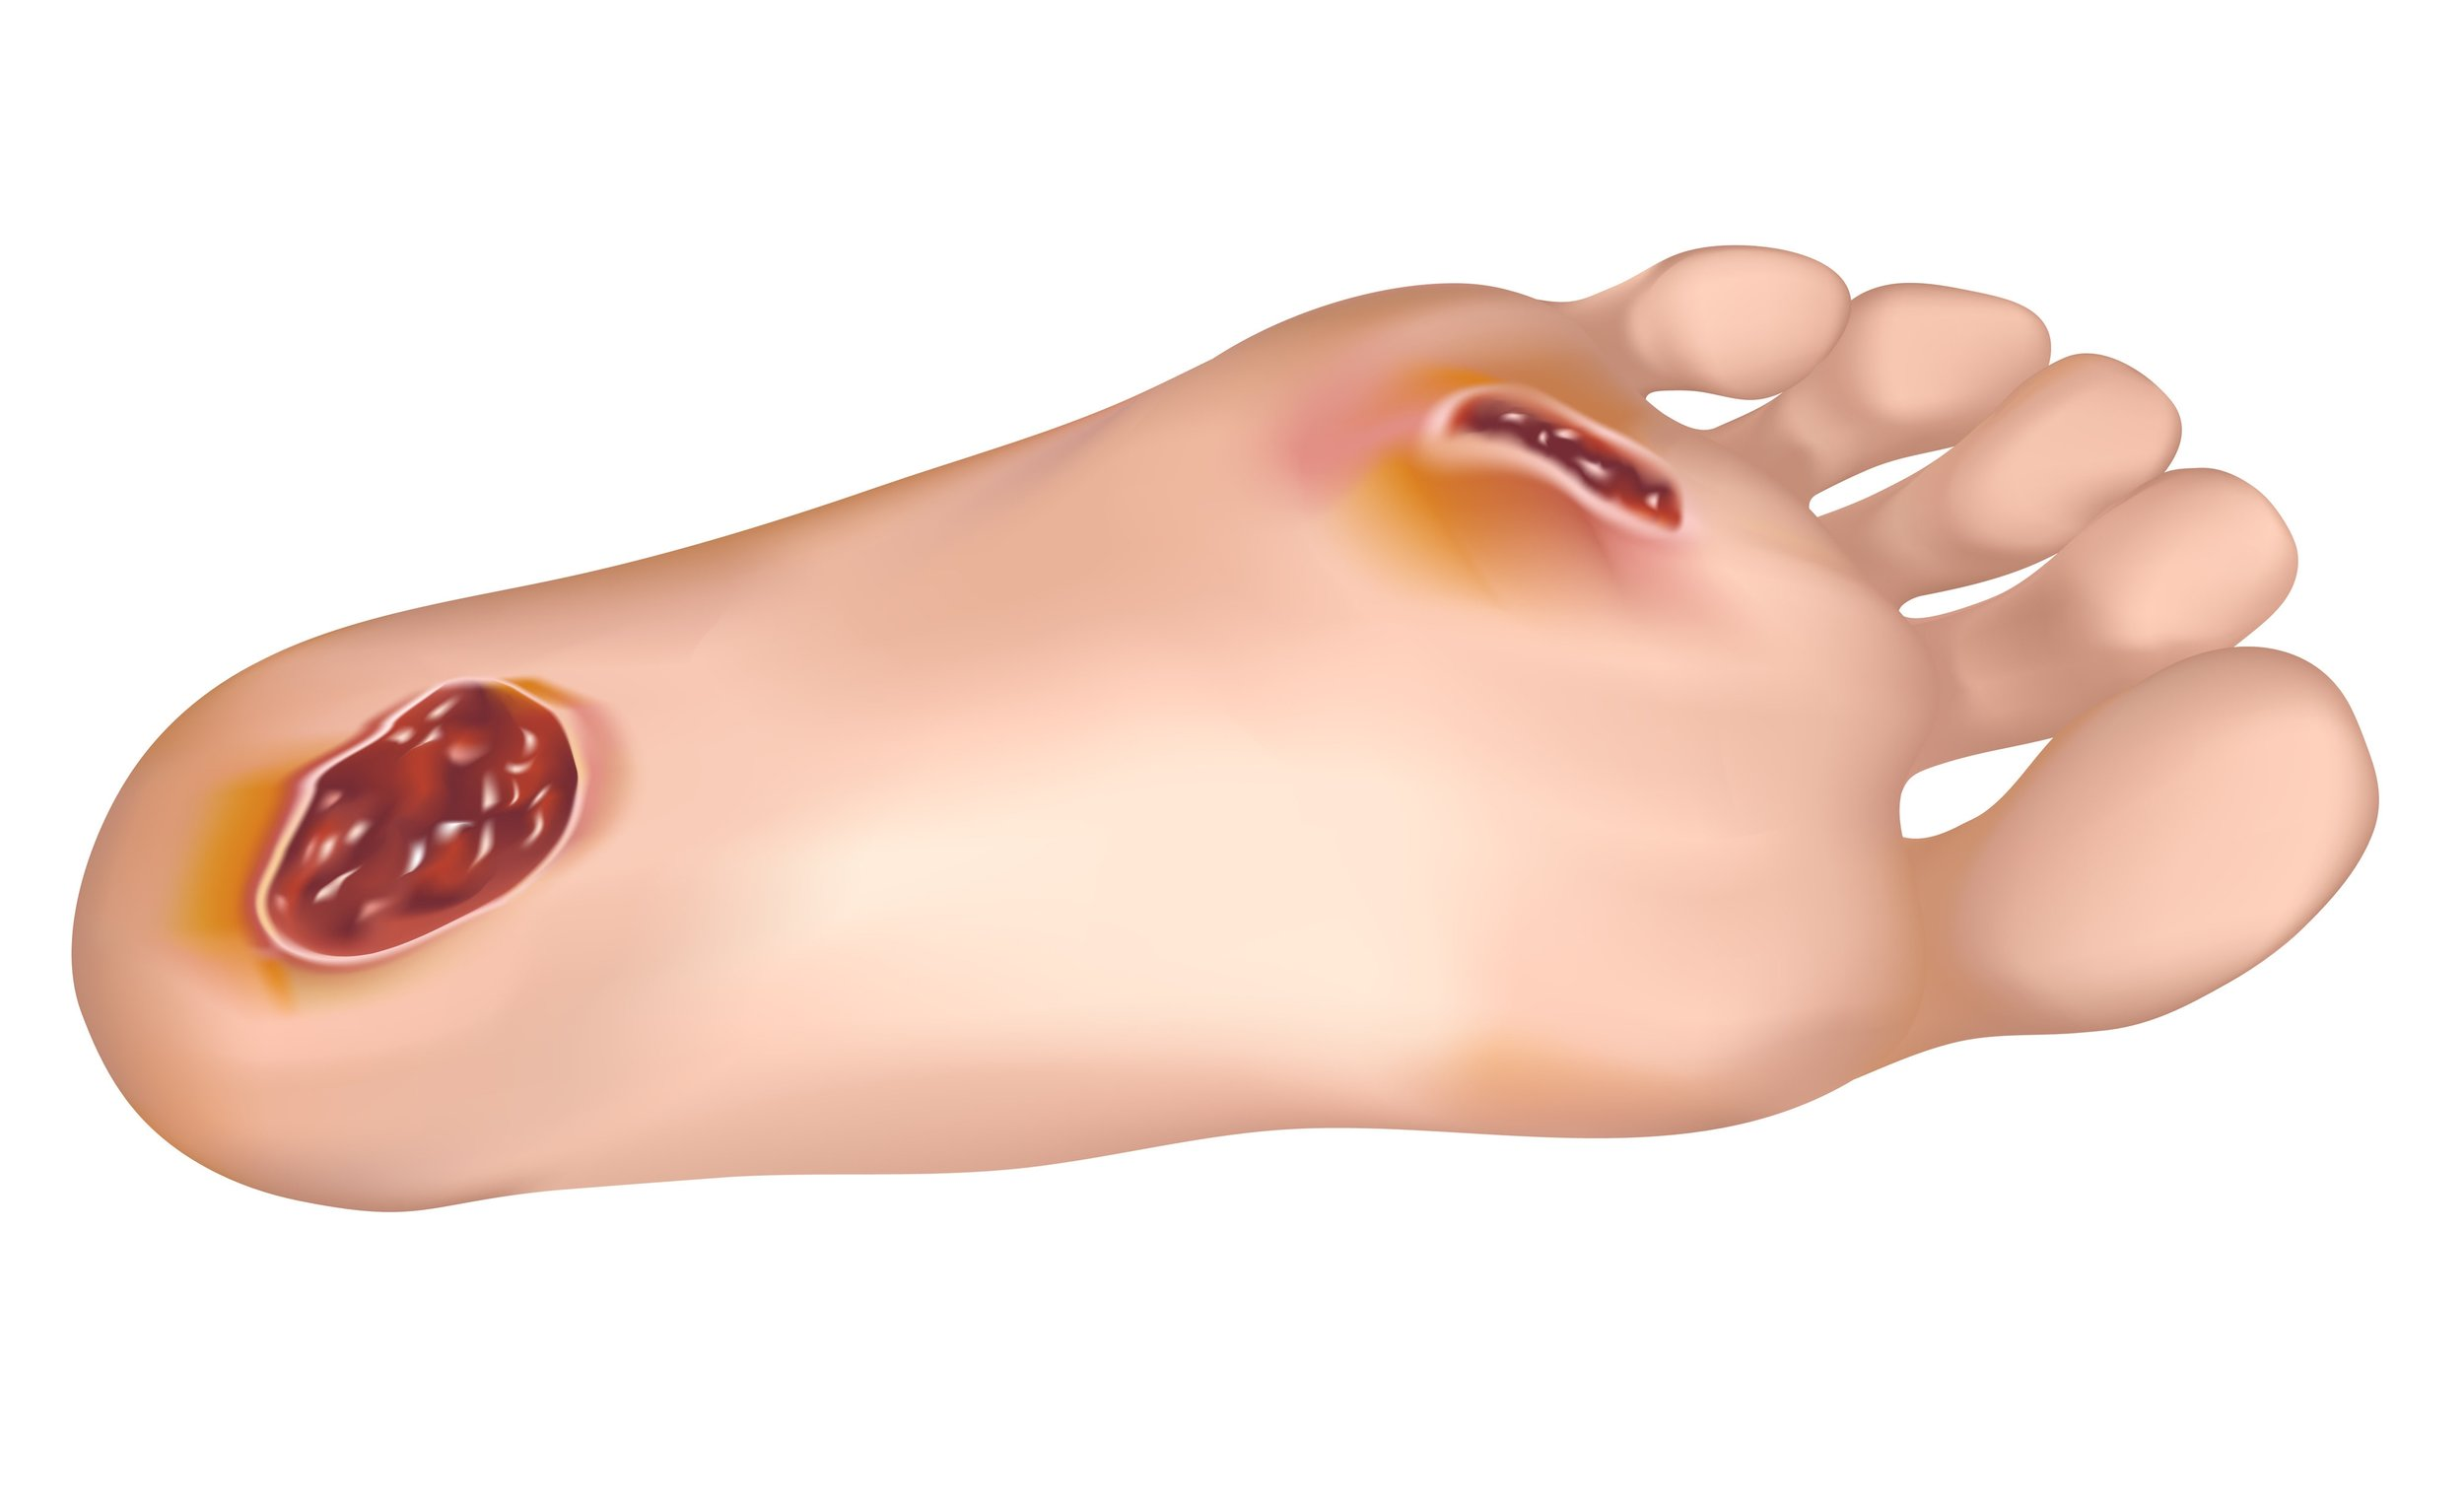 wound care expert dr. burton katzen treats foot ulcers in temple hills and clinton, md